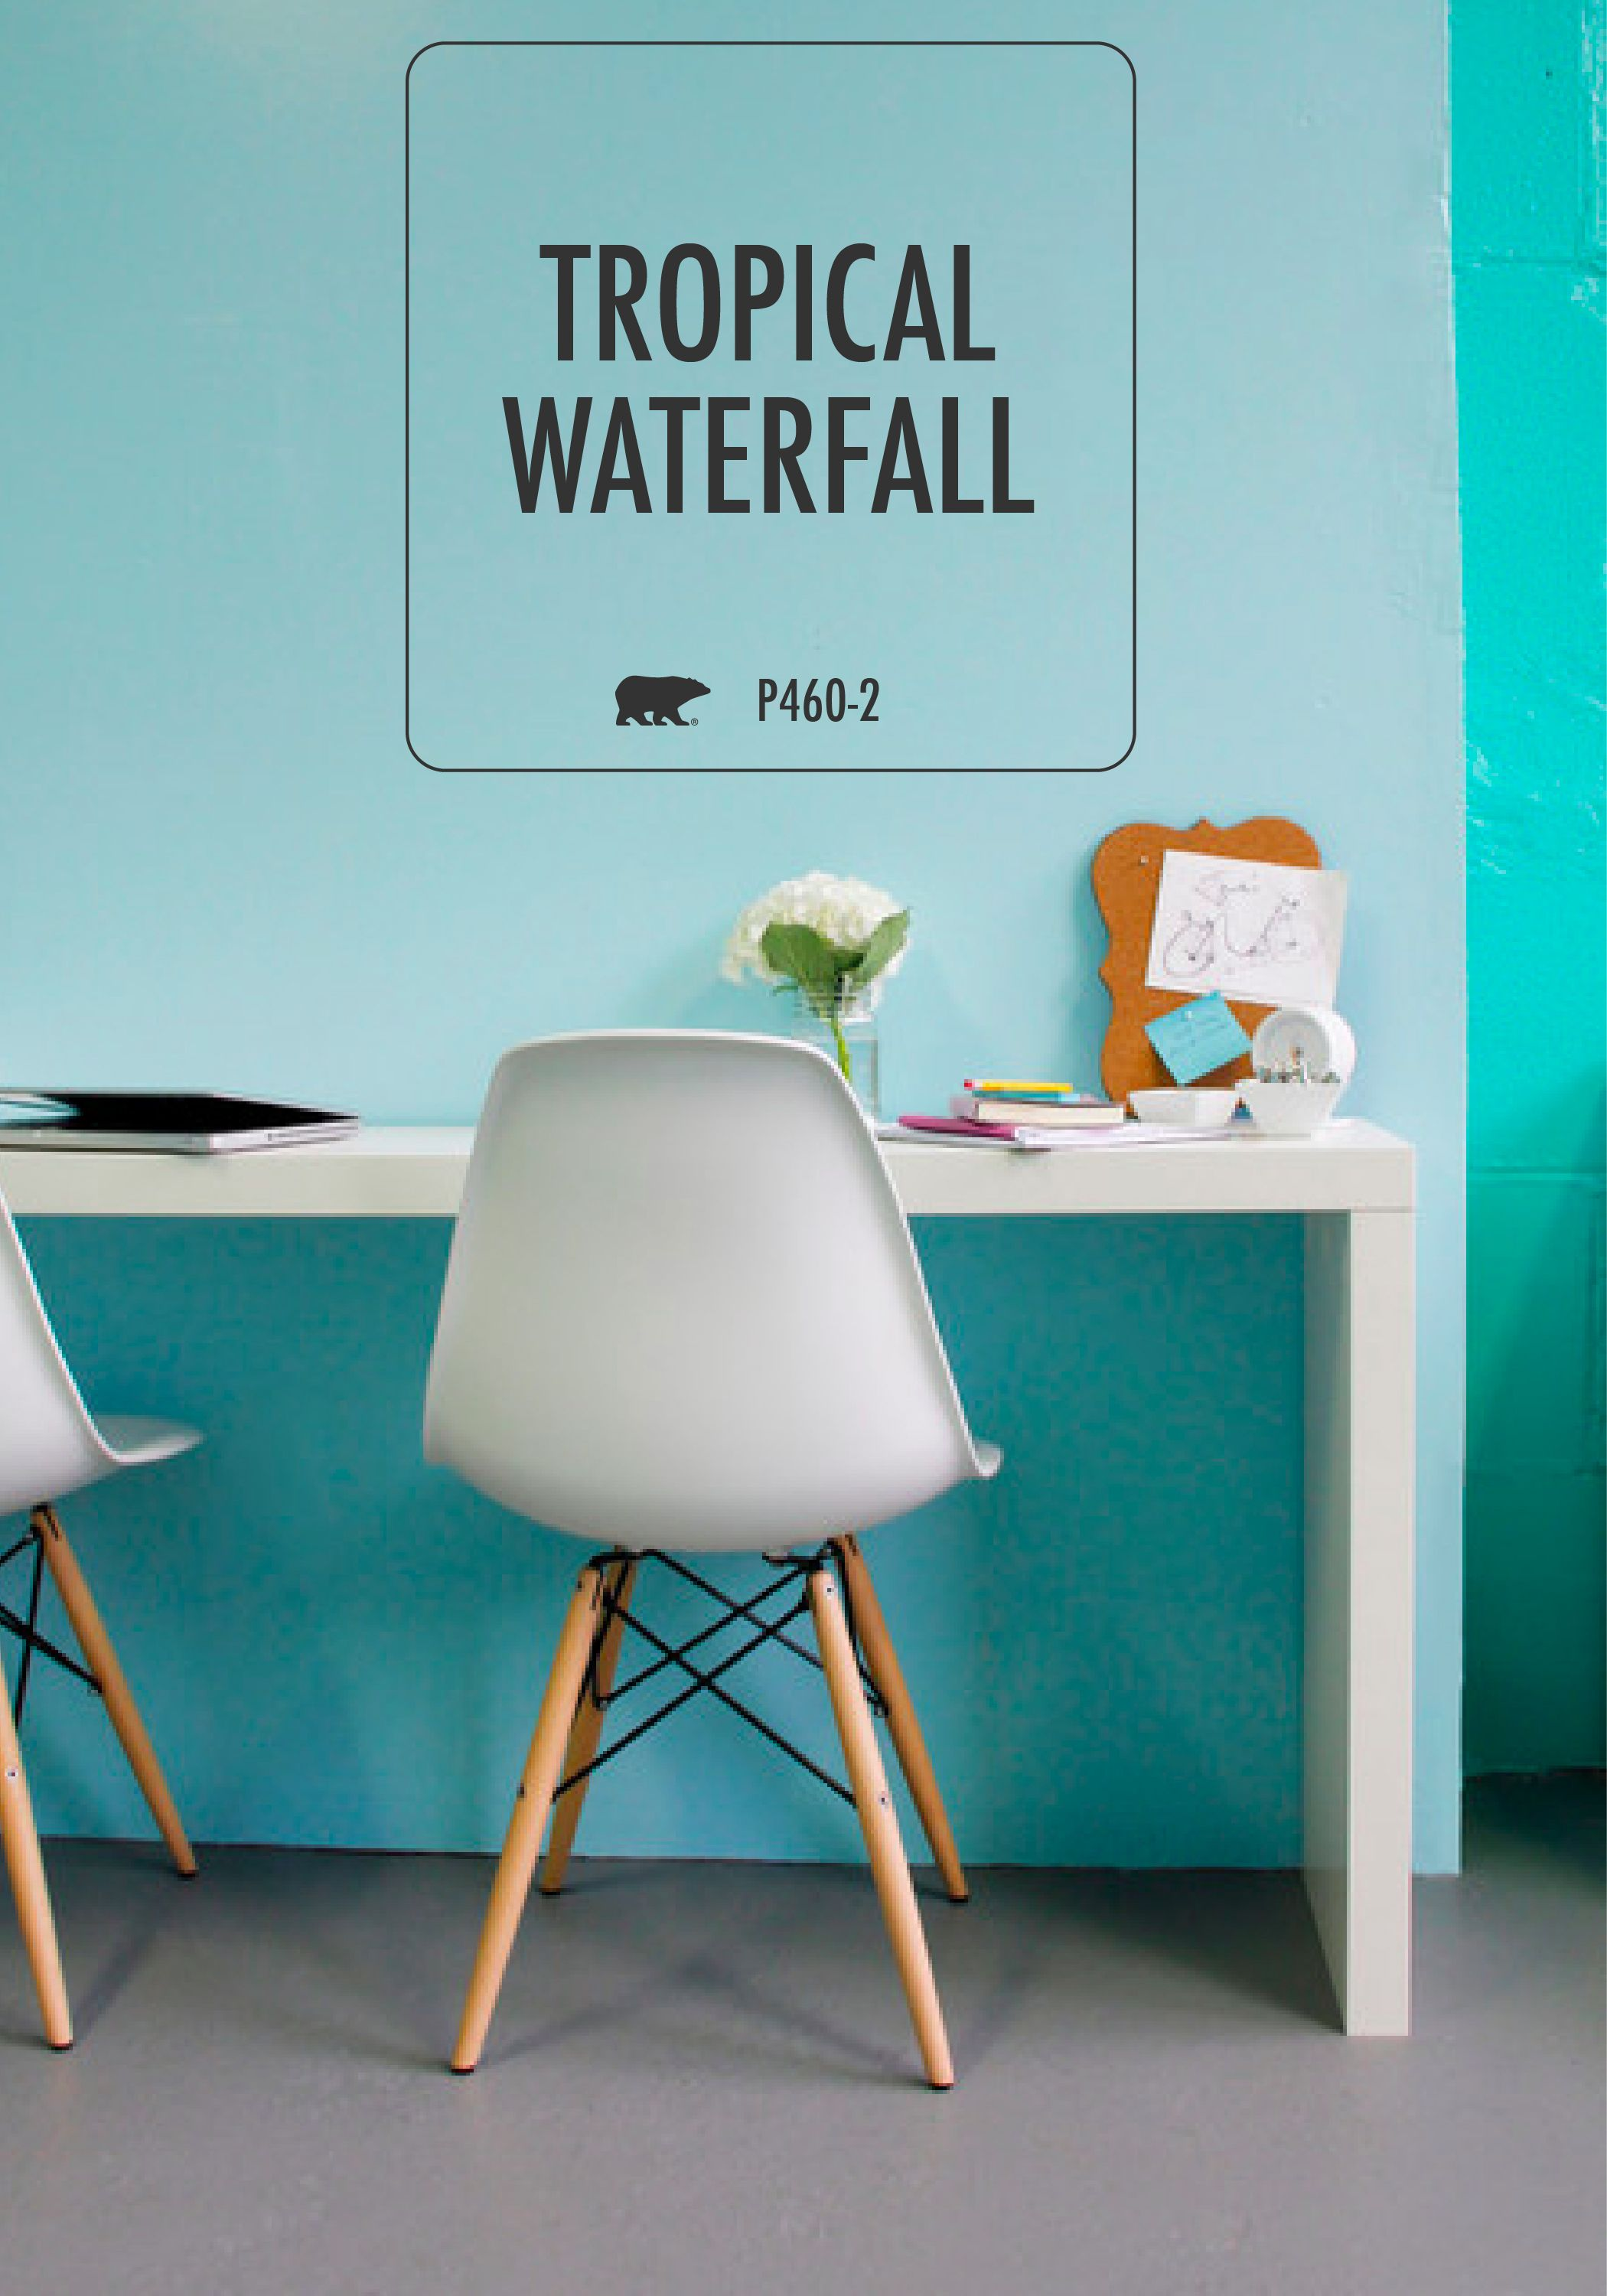 Your Worke Is Longing For An Uplifting Paint Color To Give It New Life Try Behr In Tropical Waterfall Blue And Island Aqua On Accent Wall